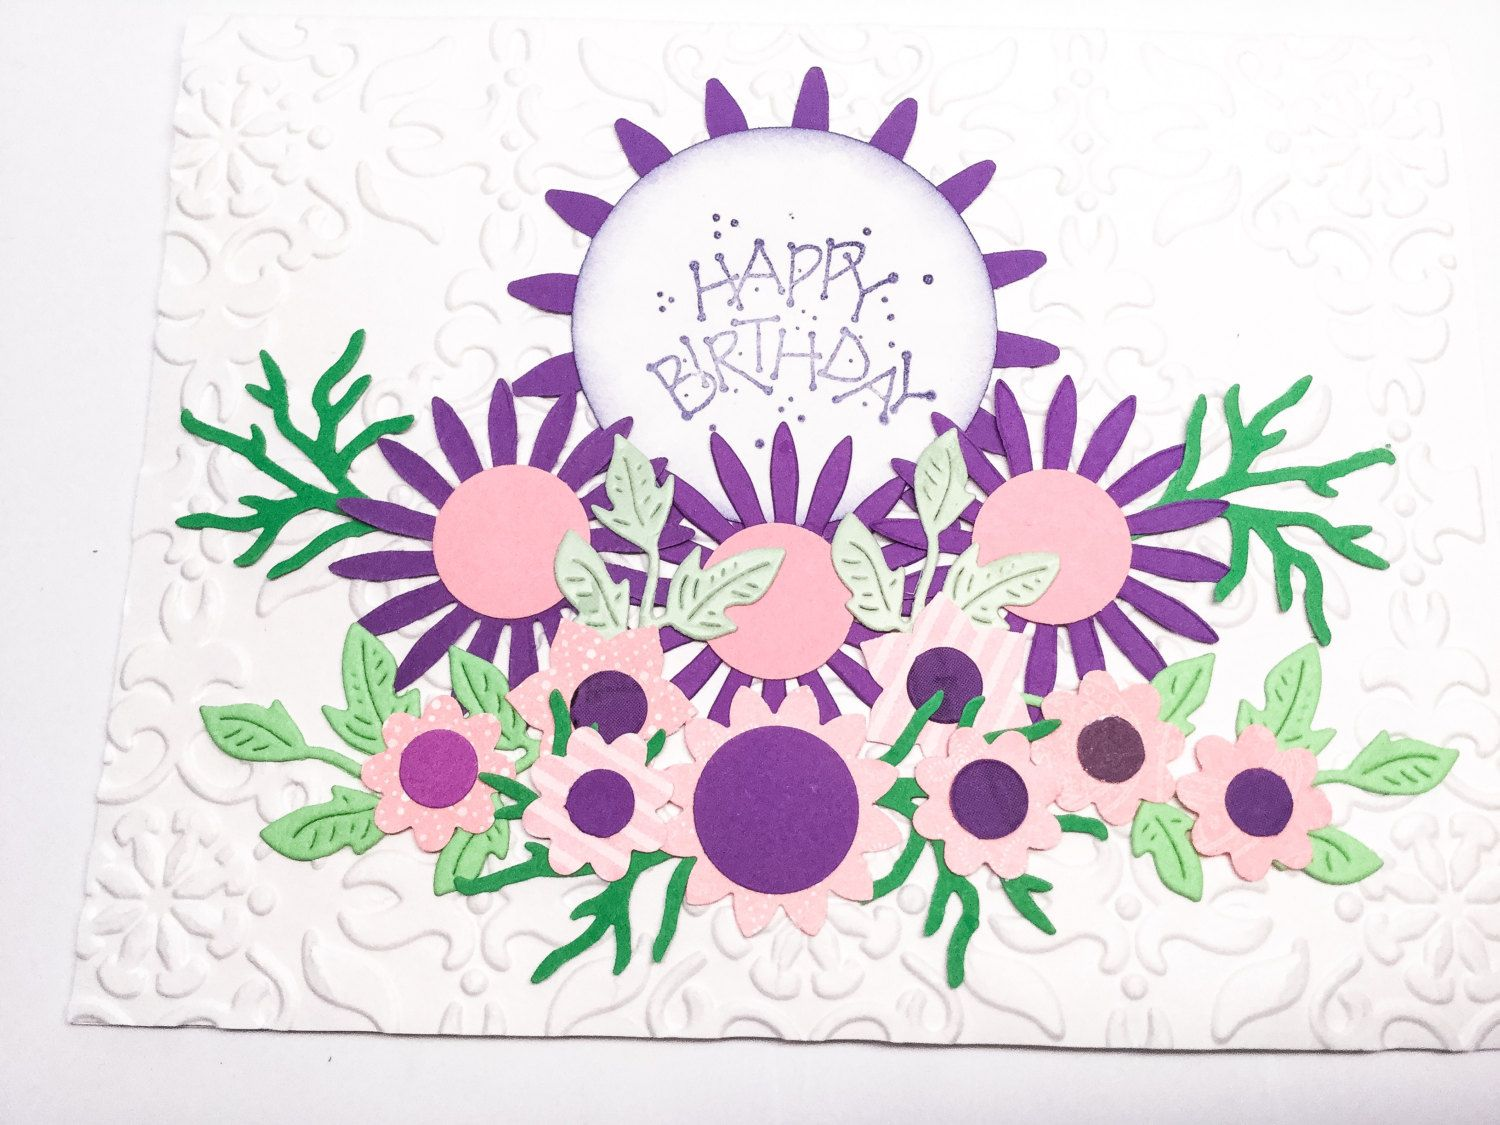 Pick your card stampin up handmade cards birthday cards stampin up handmade cards birthday cards white embossed pink flowers purple izmirmasajfo